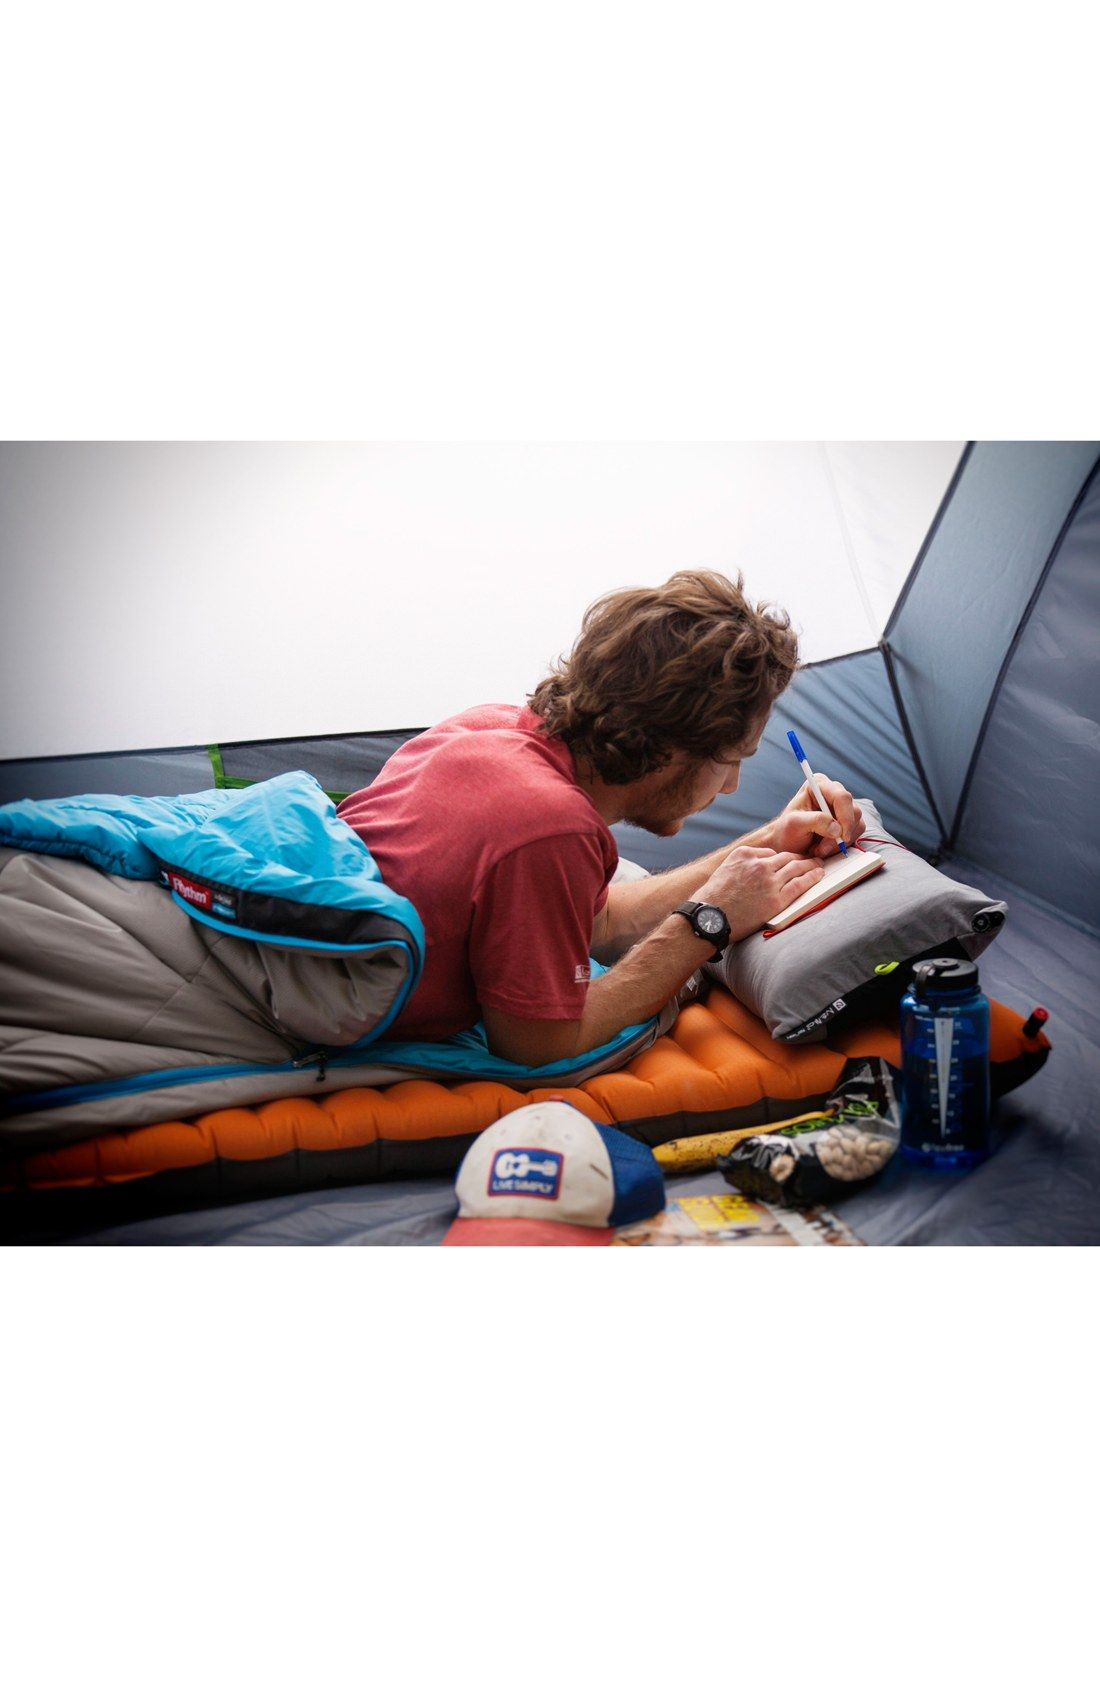 NEMO 'Fillo™ Luxury' Inflatable Backpacking & Camping